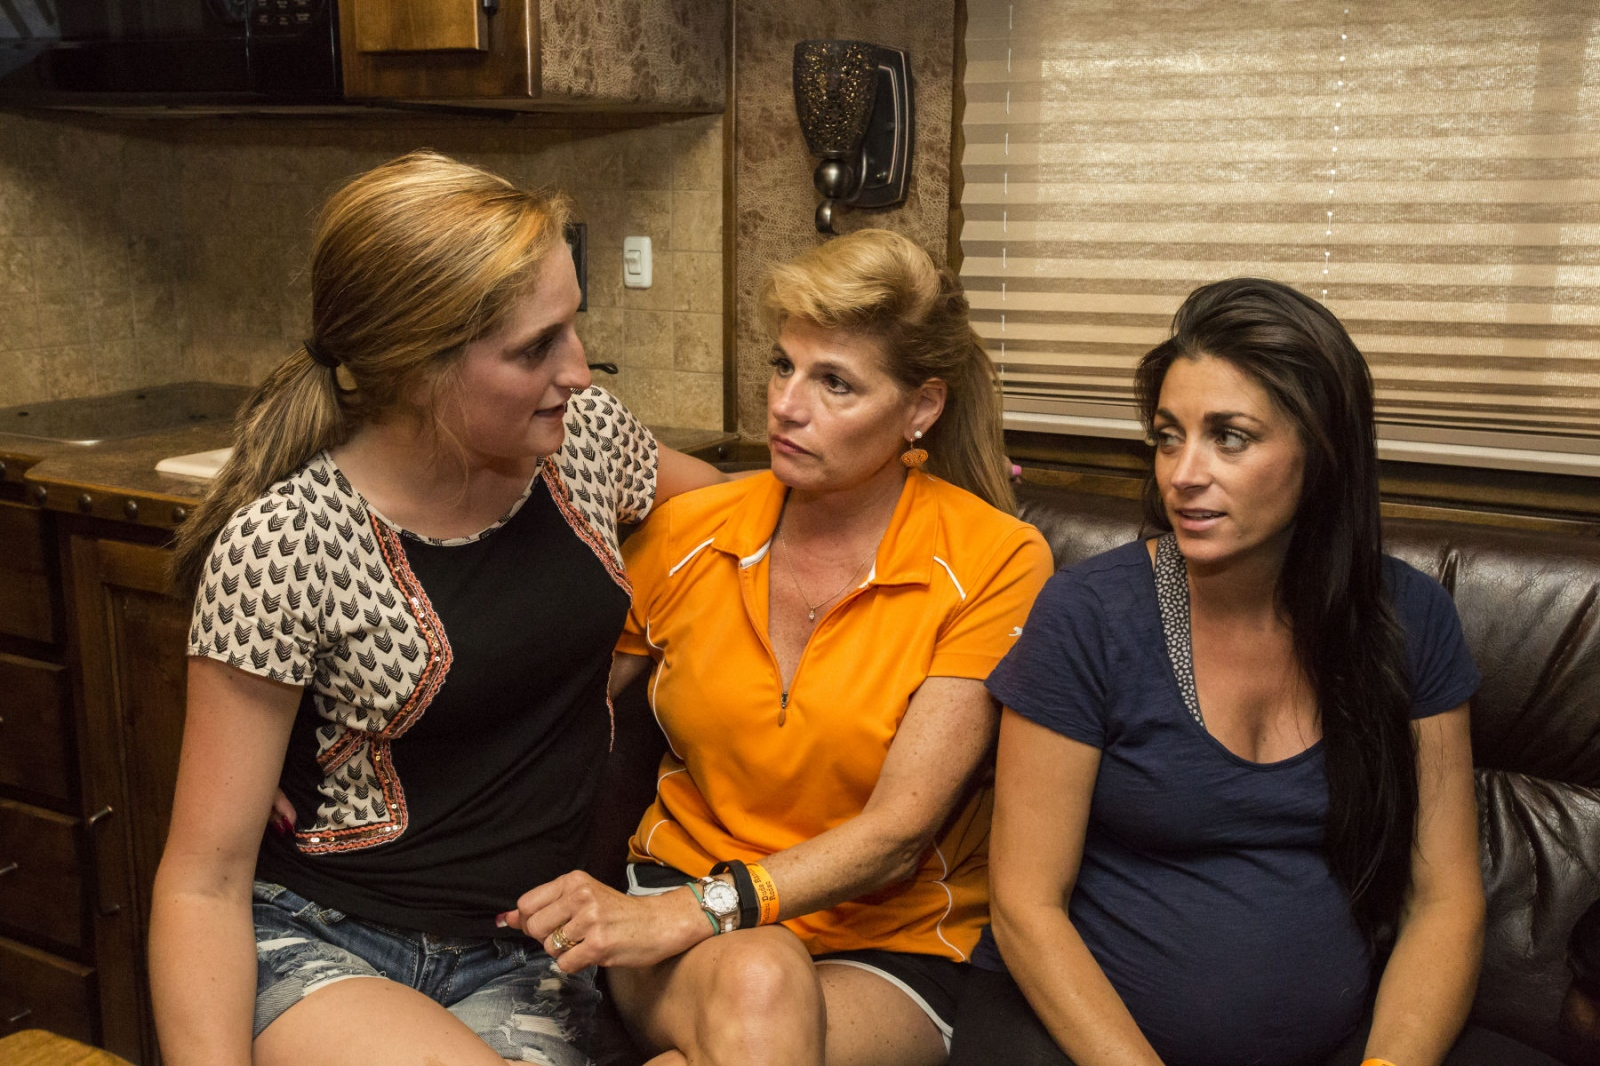 Taylor Young with her mother Anna Shields-Young and Jayme Myers, her sister, and trainer, inside of their caravan, discussing her ride tonight at the Malibu Rodeo in Milford, Pennsylvania. This is the first time her mother will be seeing Taylor compete in a rodeo. (Kevin C. Downs/Agence Cosmos)